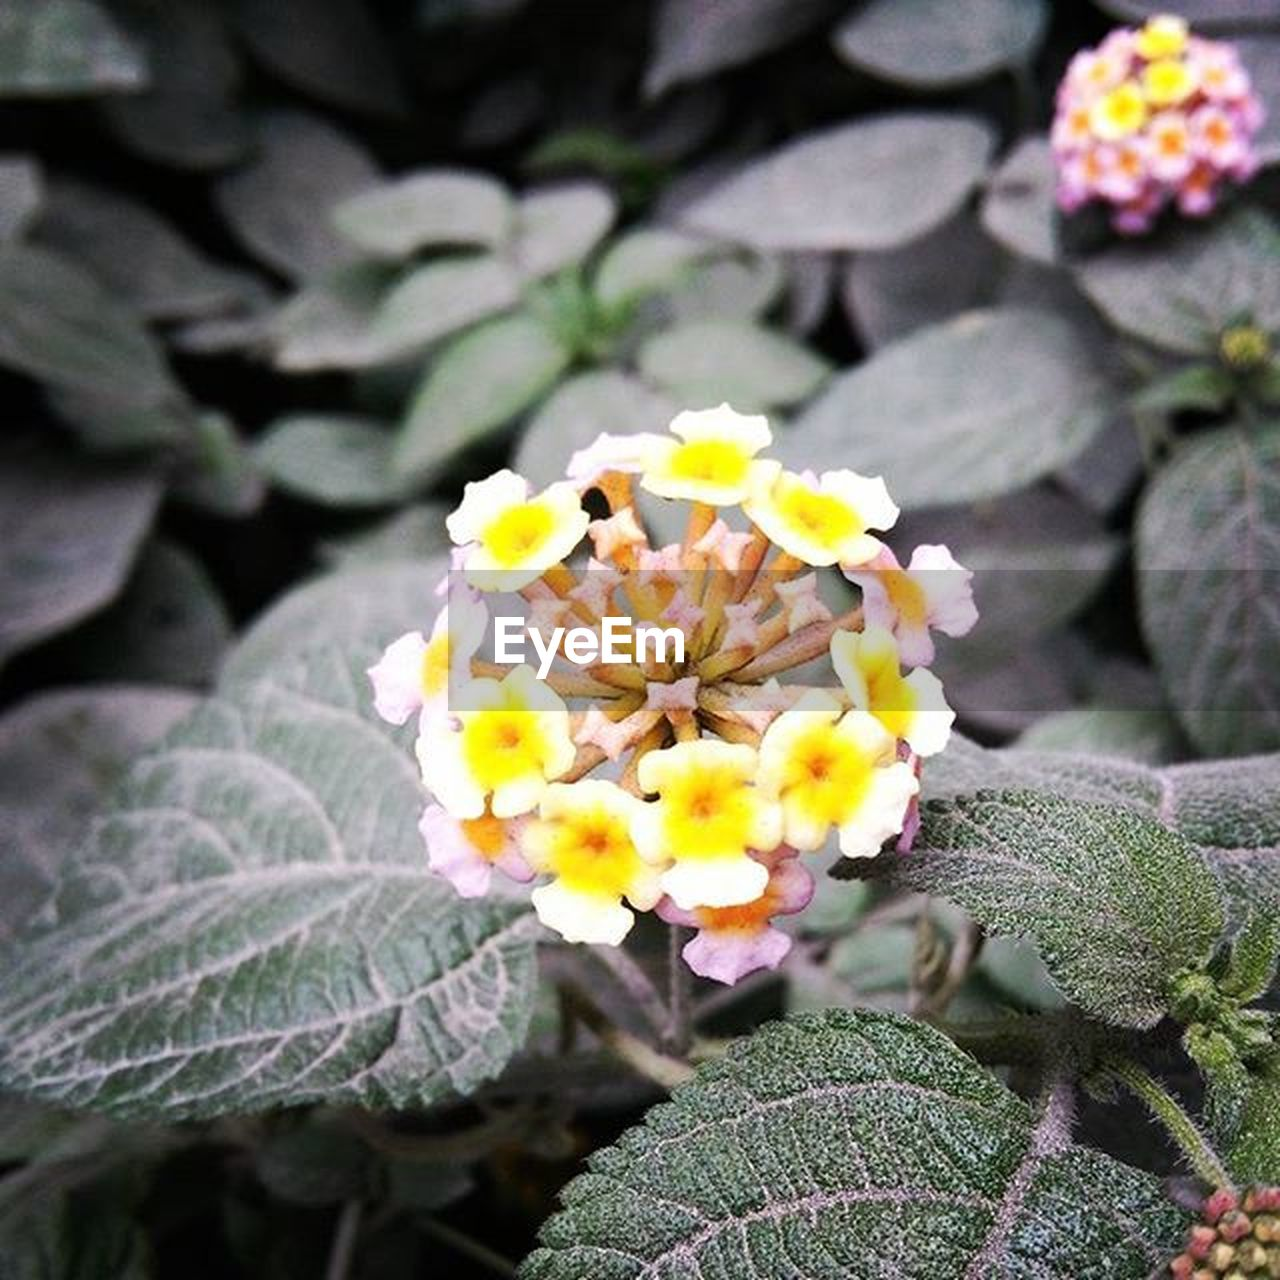 flower, growth, freshness, beauty in nature, petal, fragility, nature, flower head, plant, day, lantana camara, outdoors, blooming, close-up, no people, leaf